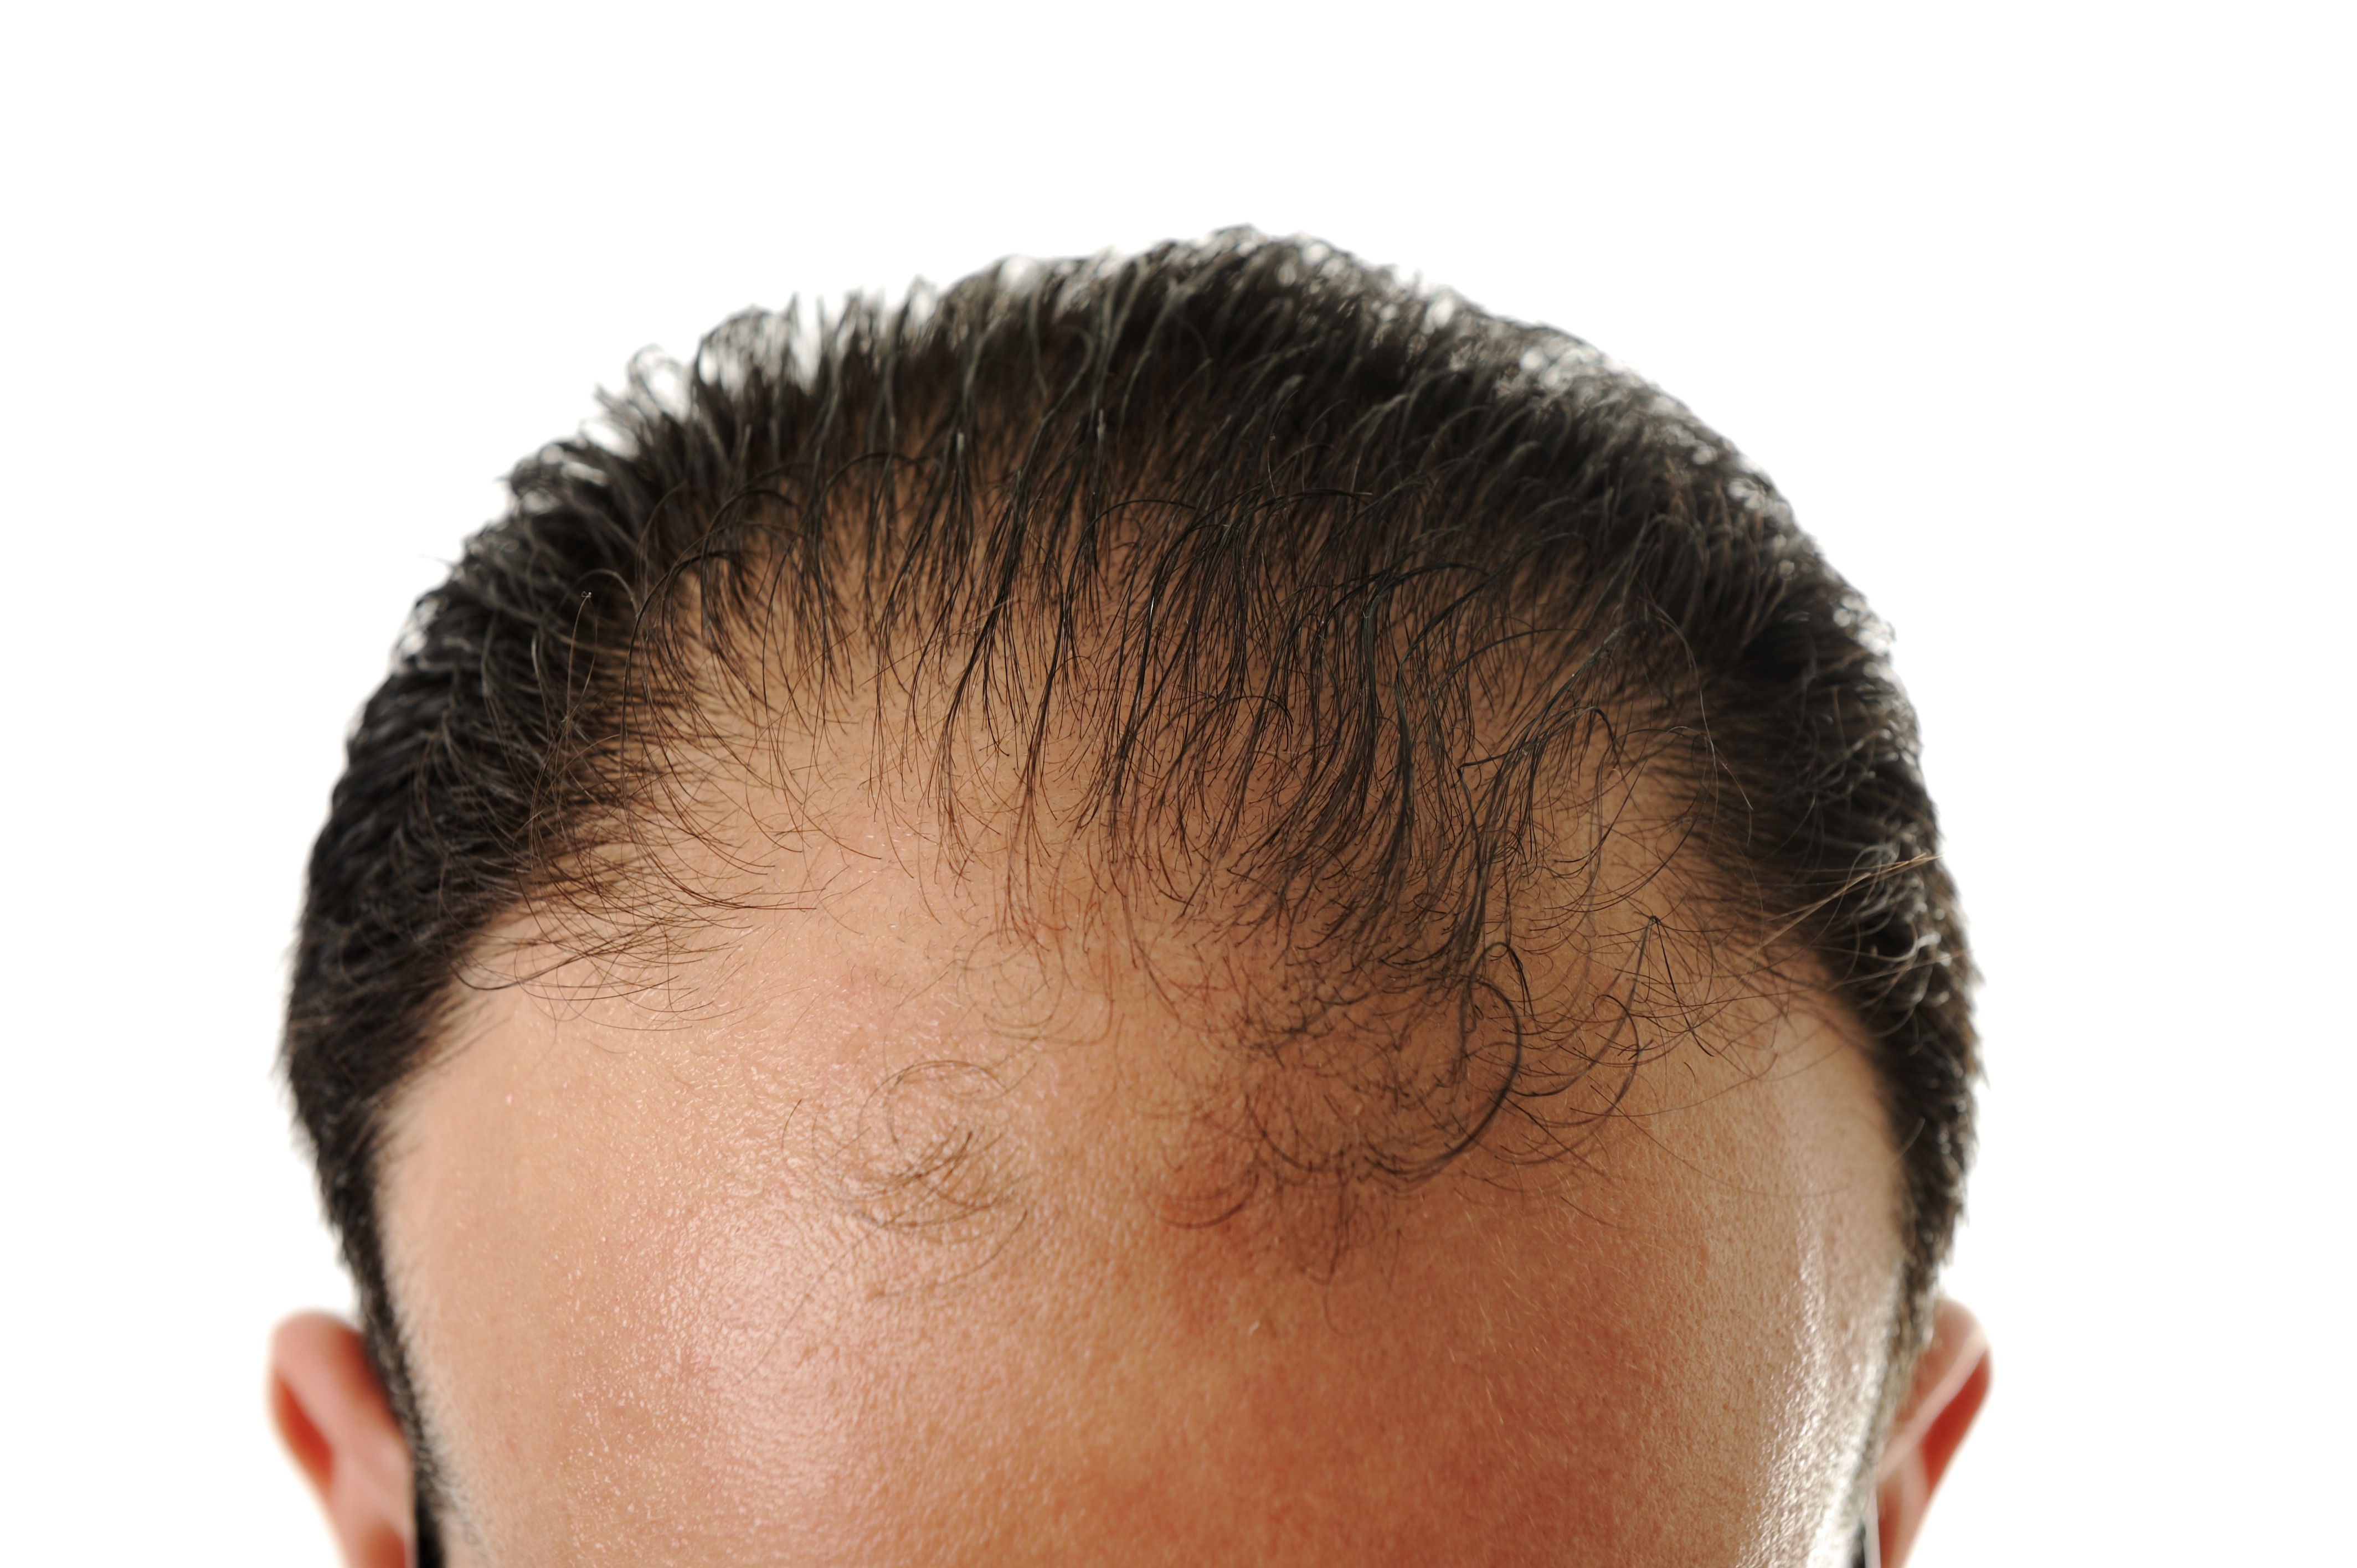 man experiencing male-pattern baldness